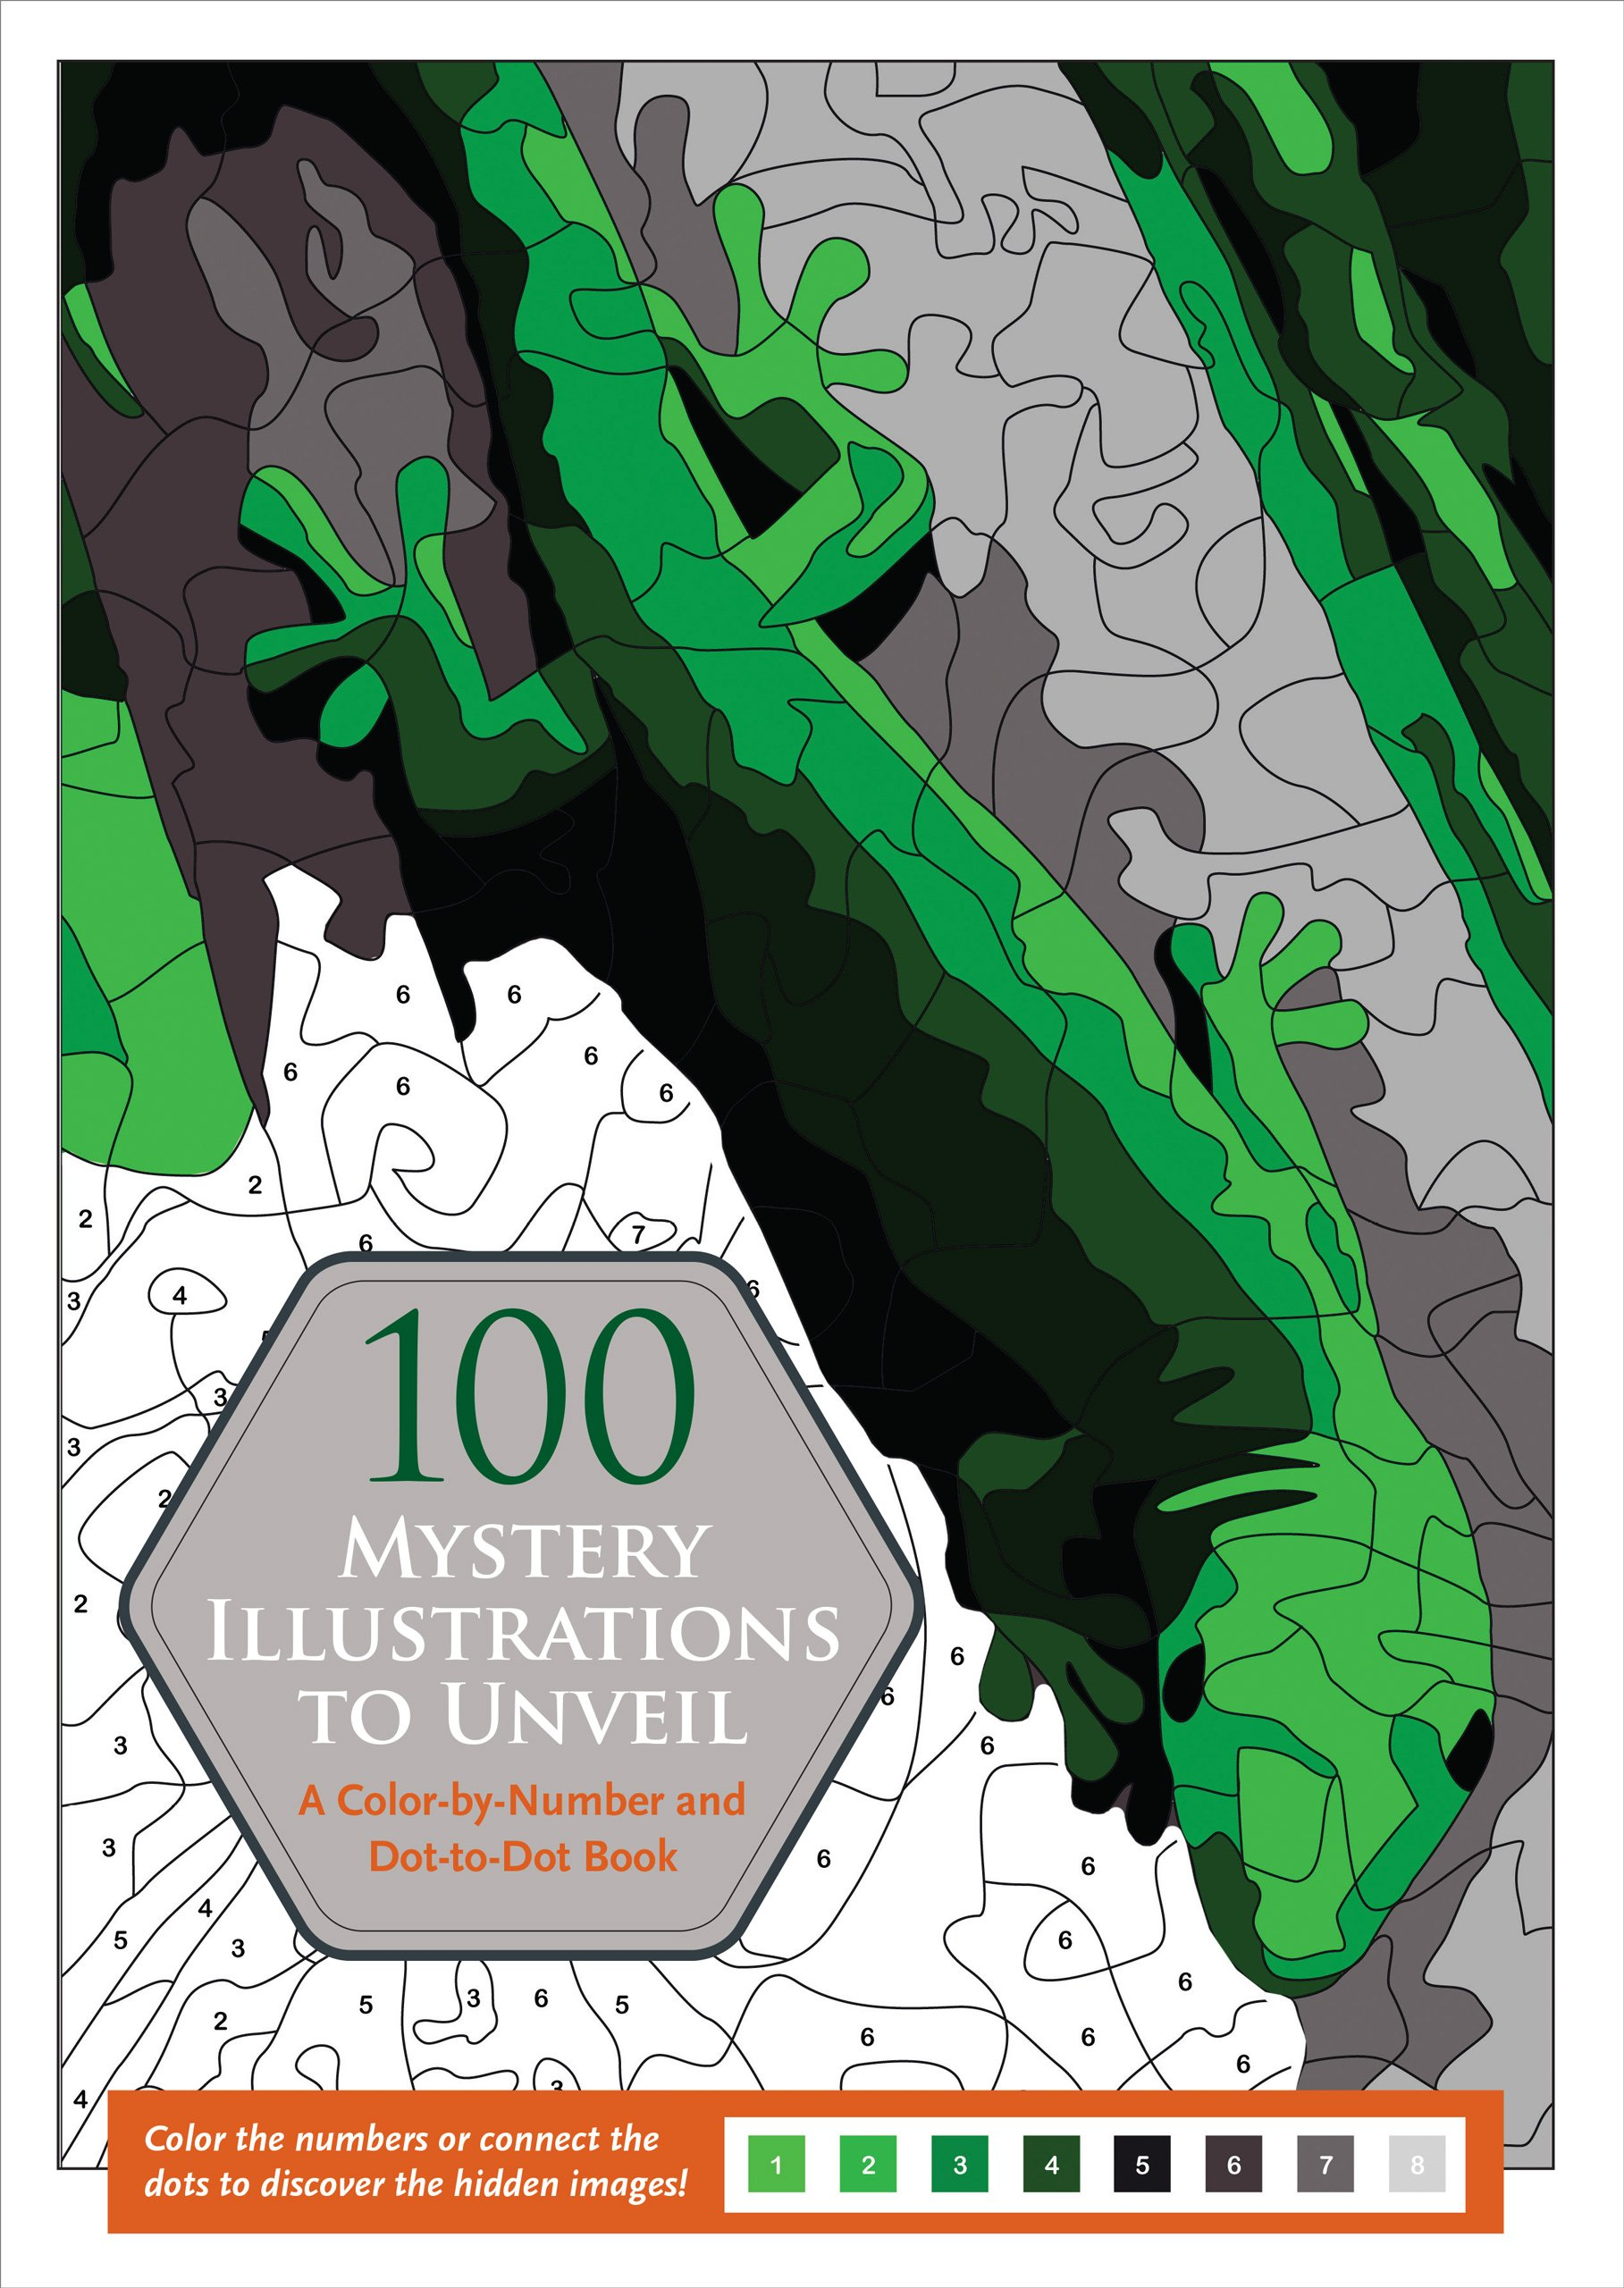 Amazon.com: 100 Mystery Illustrations to Unveil: A Color-by-Number ...